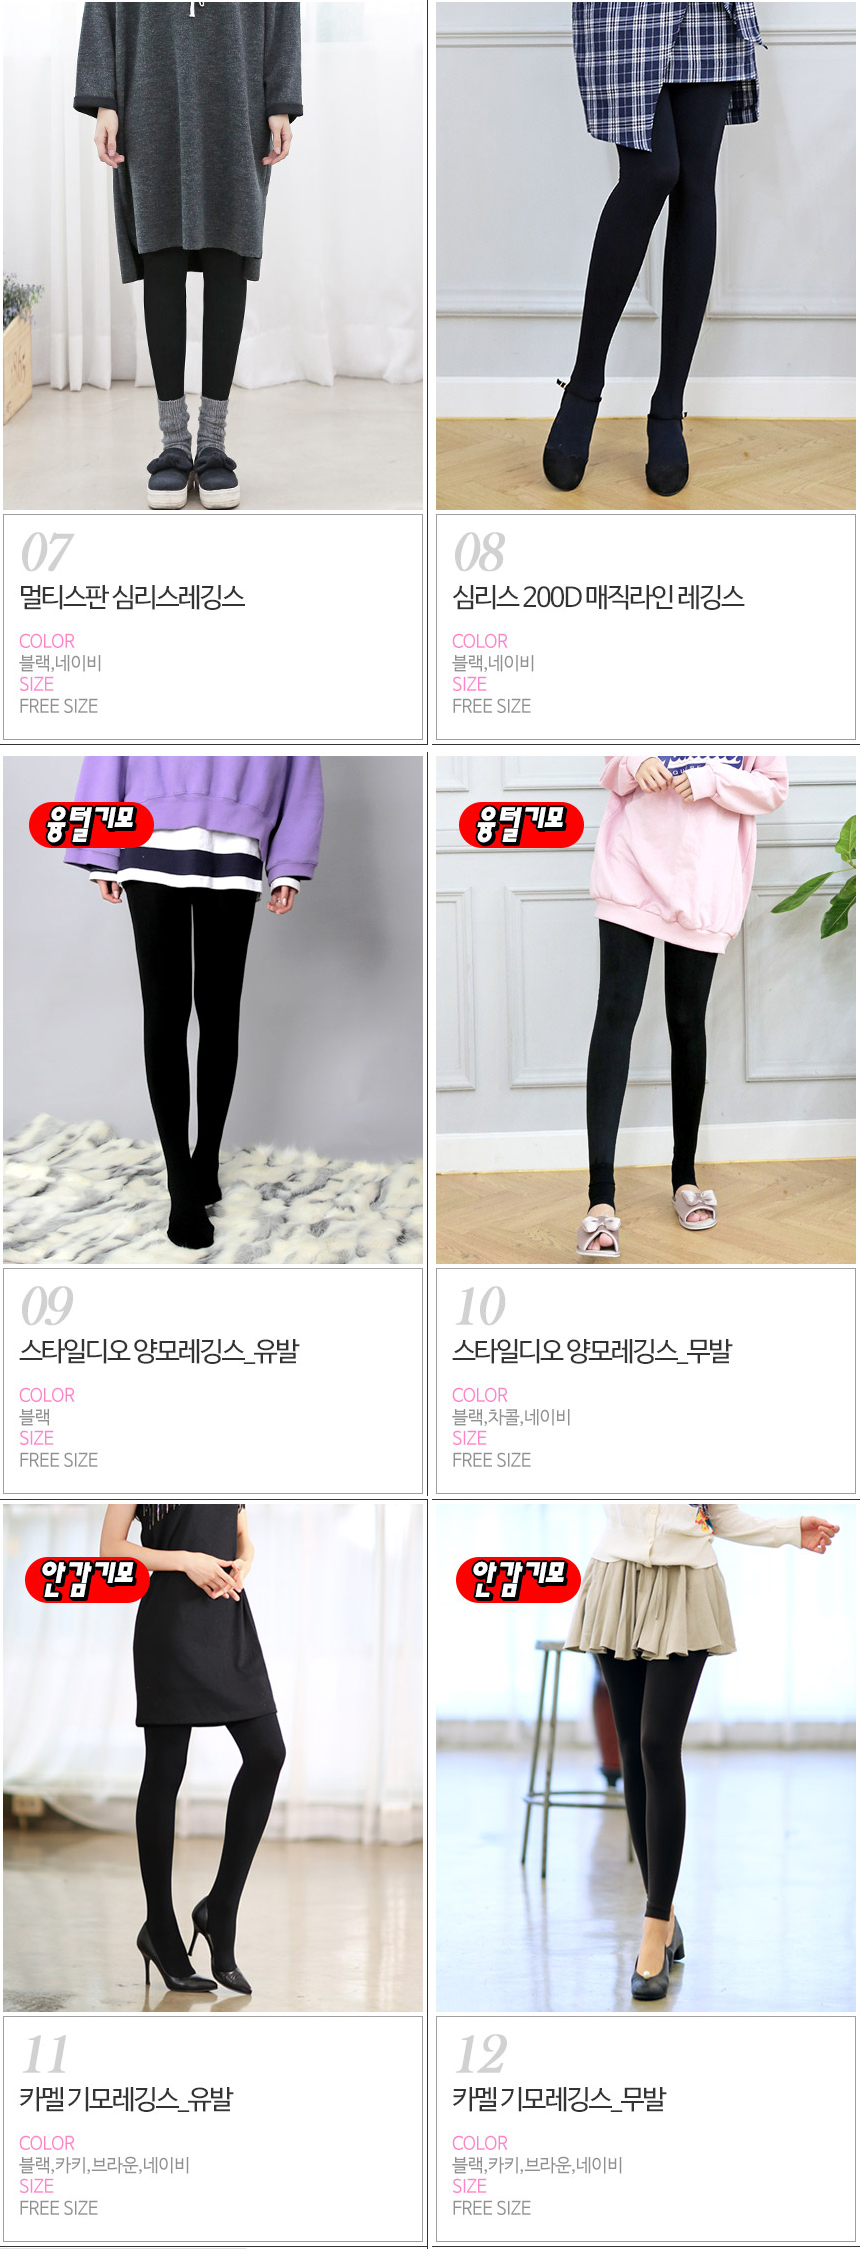 winter_leggings_003.jpg